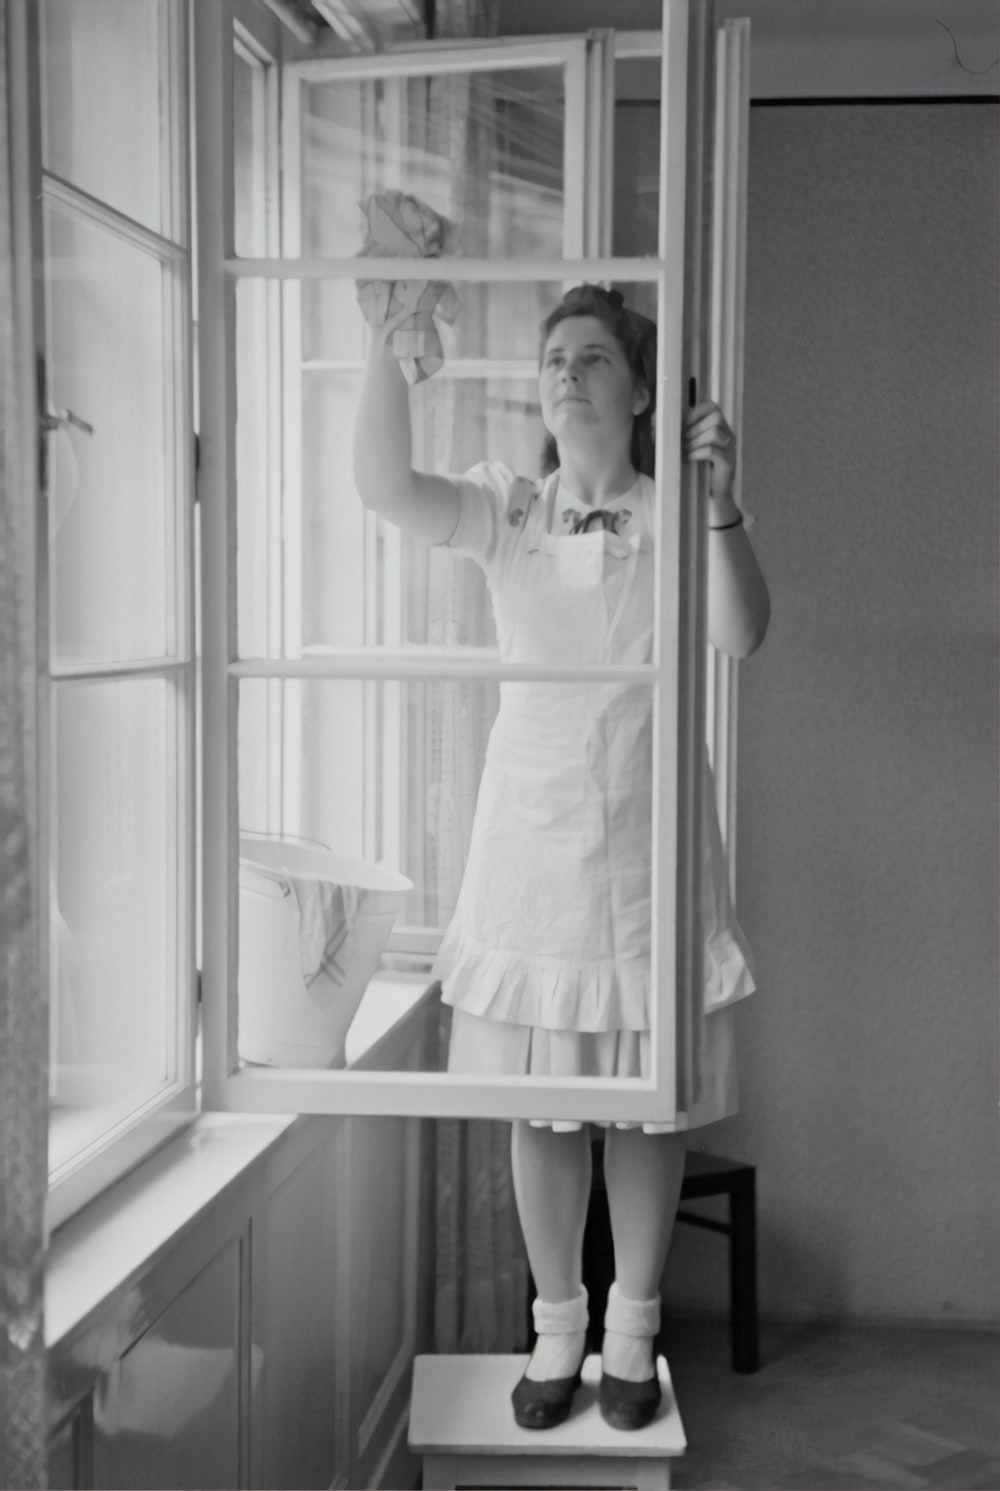 grayscale photography of woman cleaning glass window